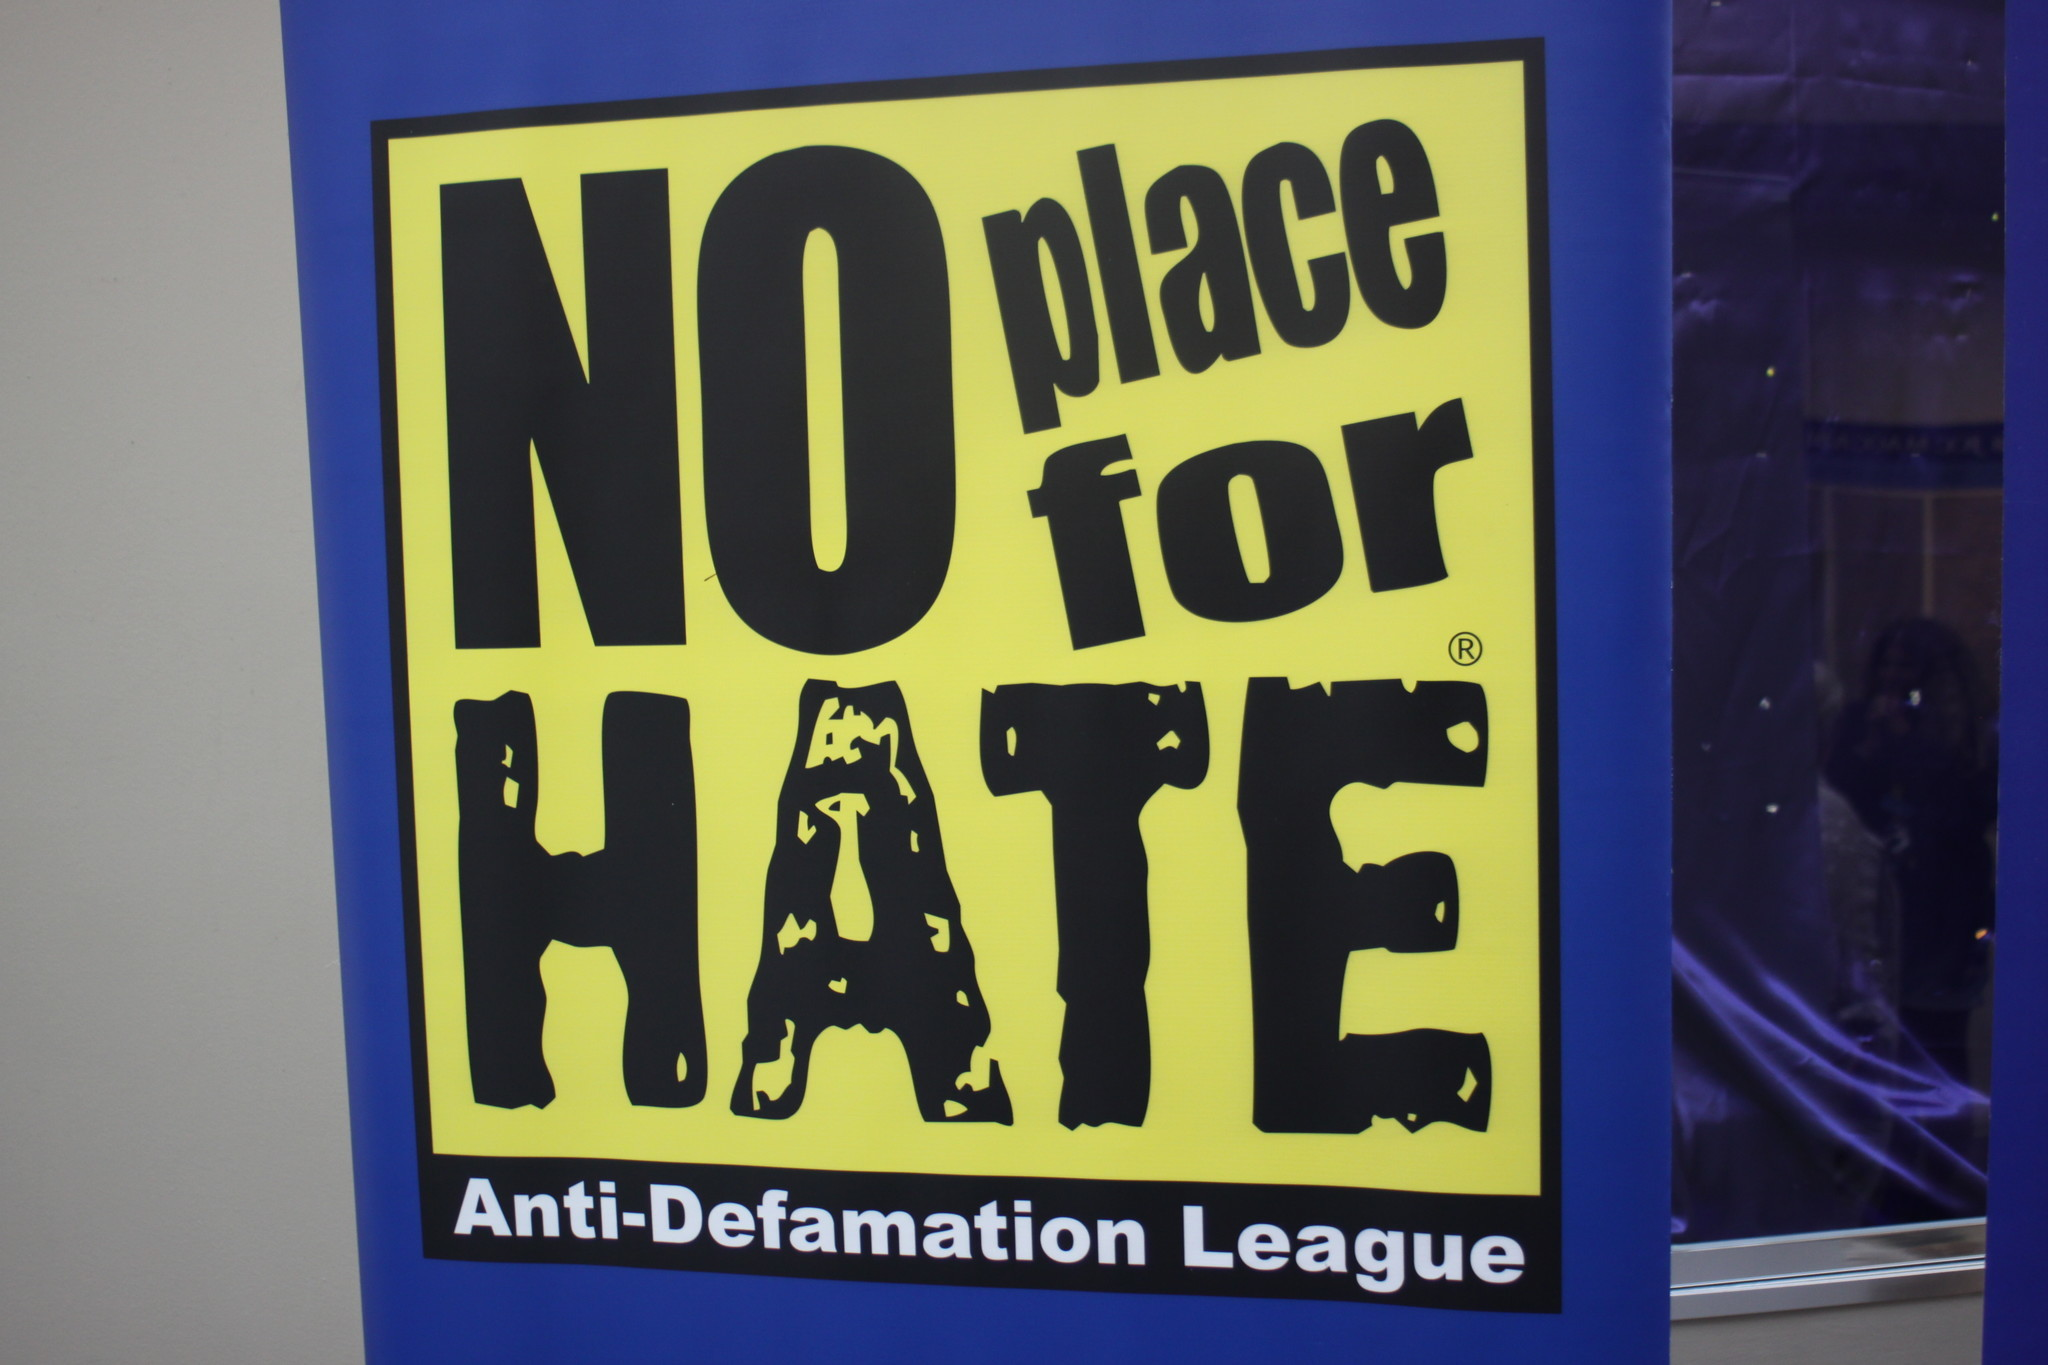 Banners with the Anti-Defamation League of San Diego's motto